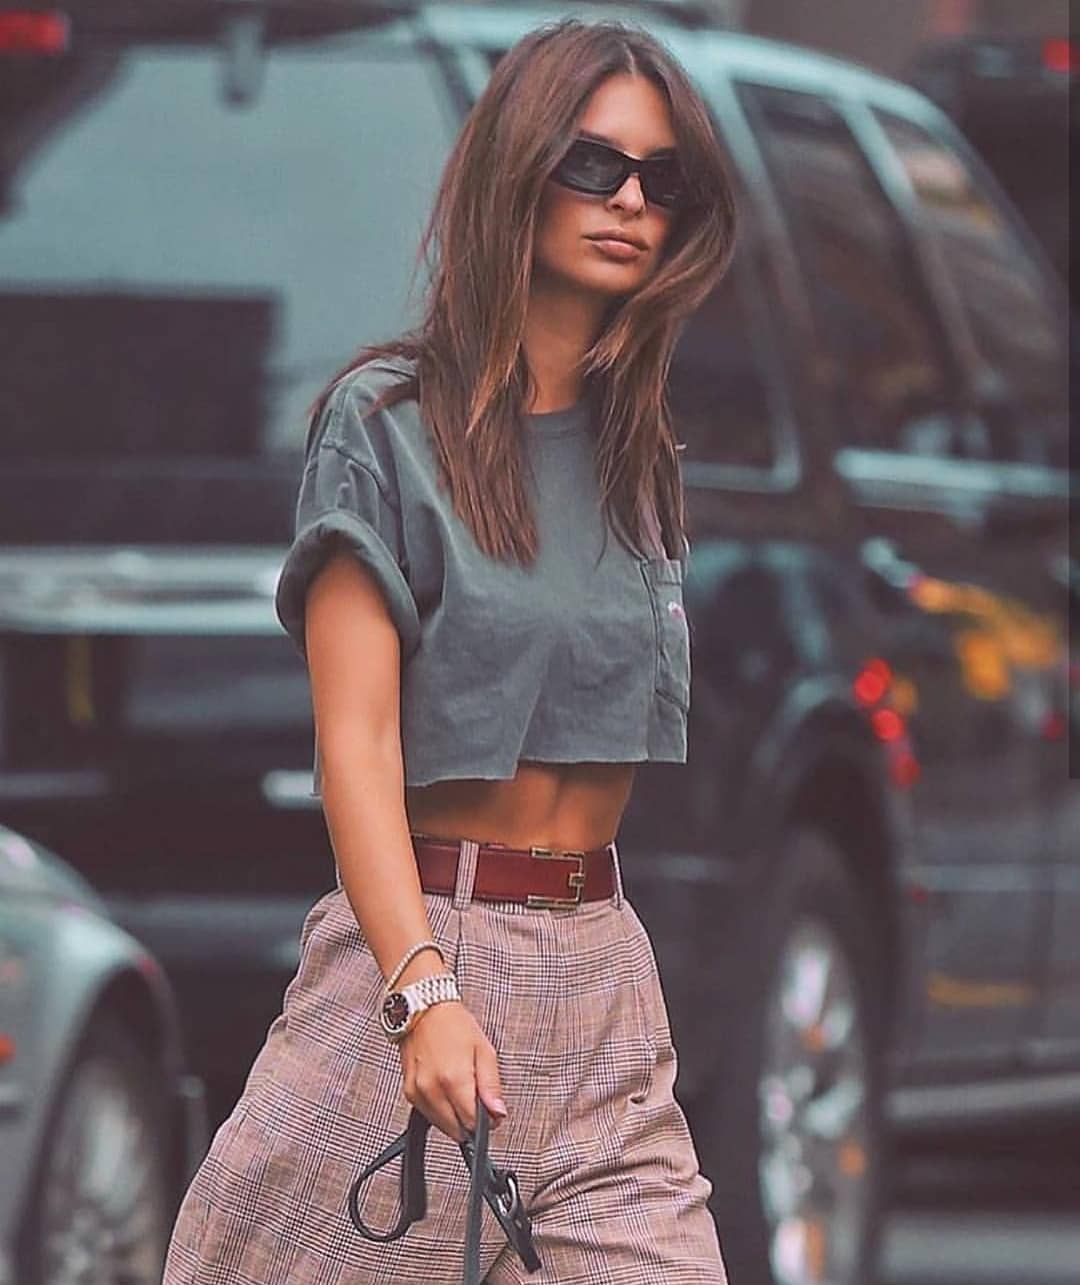 Khaki Green Crop Top And Plaid Wide Pants For Summer Casual Street Walks 2020